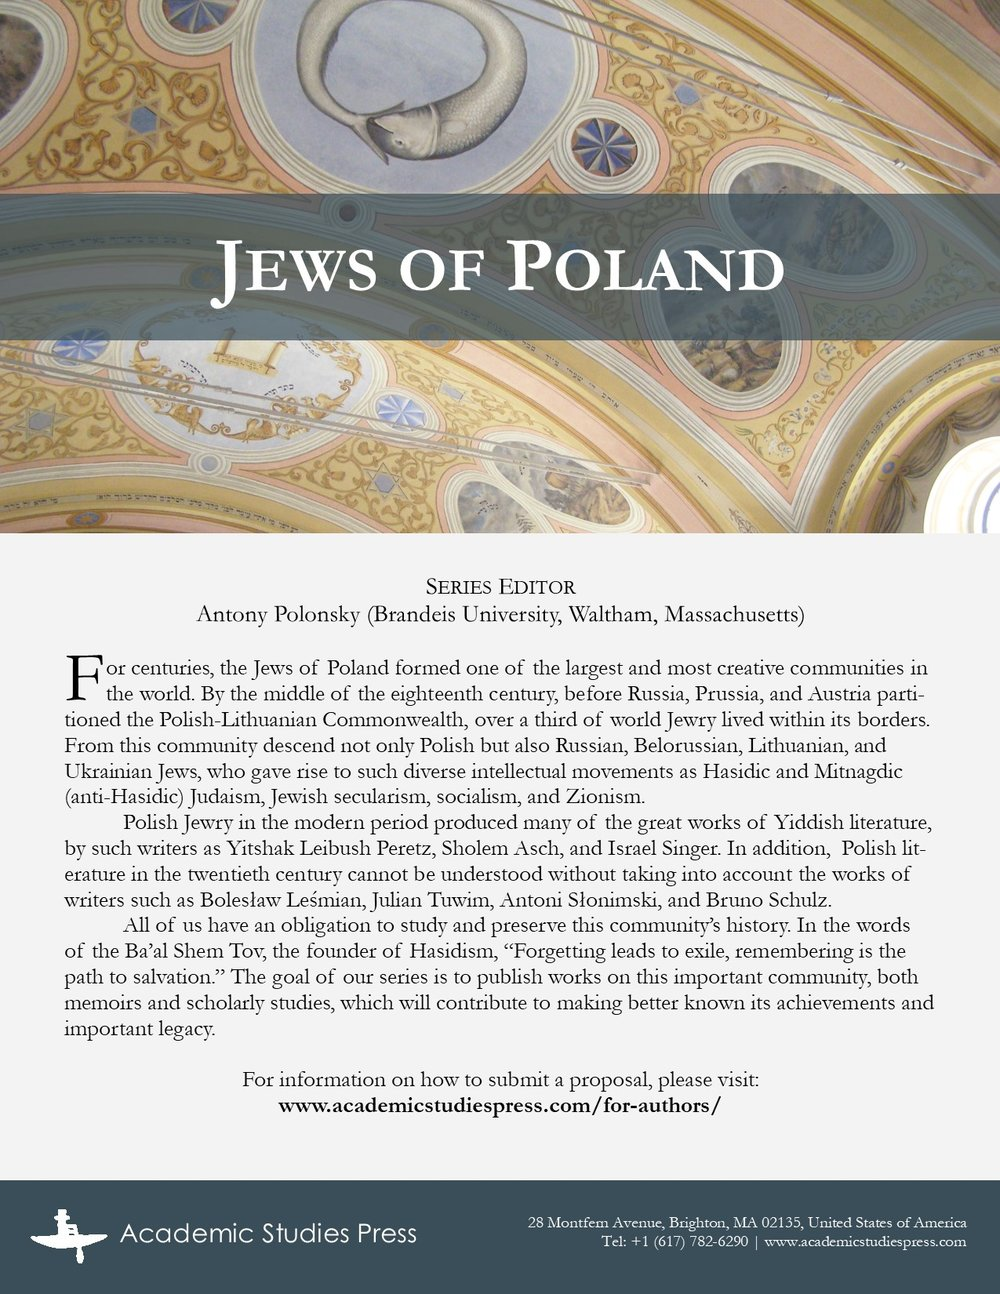 Jews of Poland Flyer.jpg